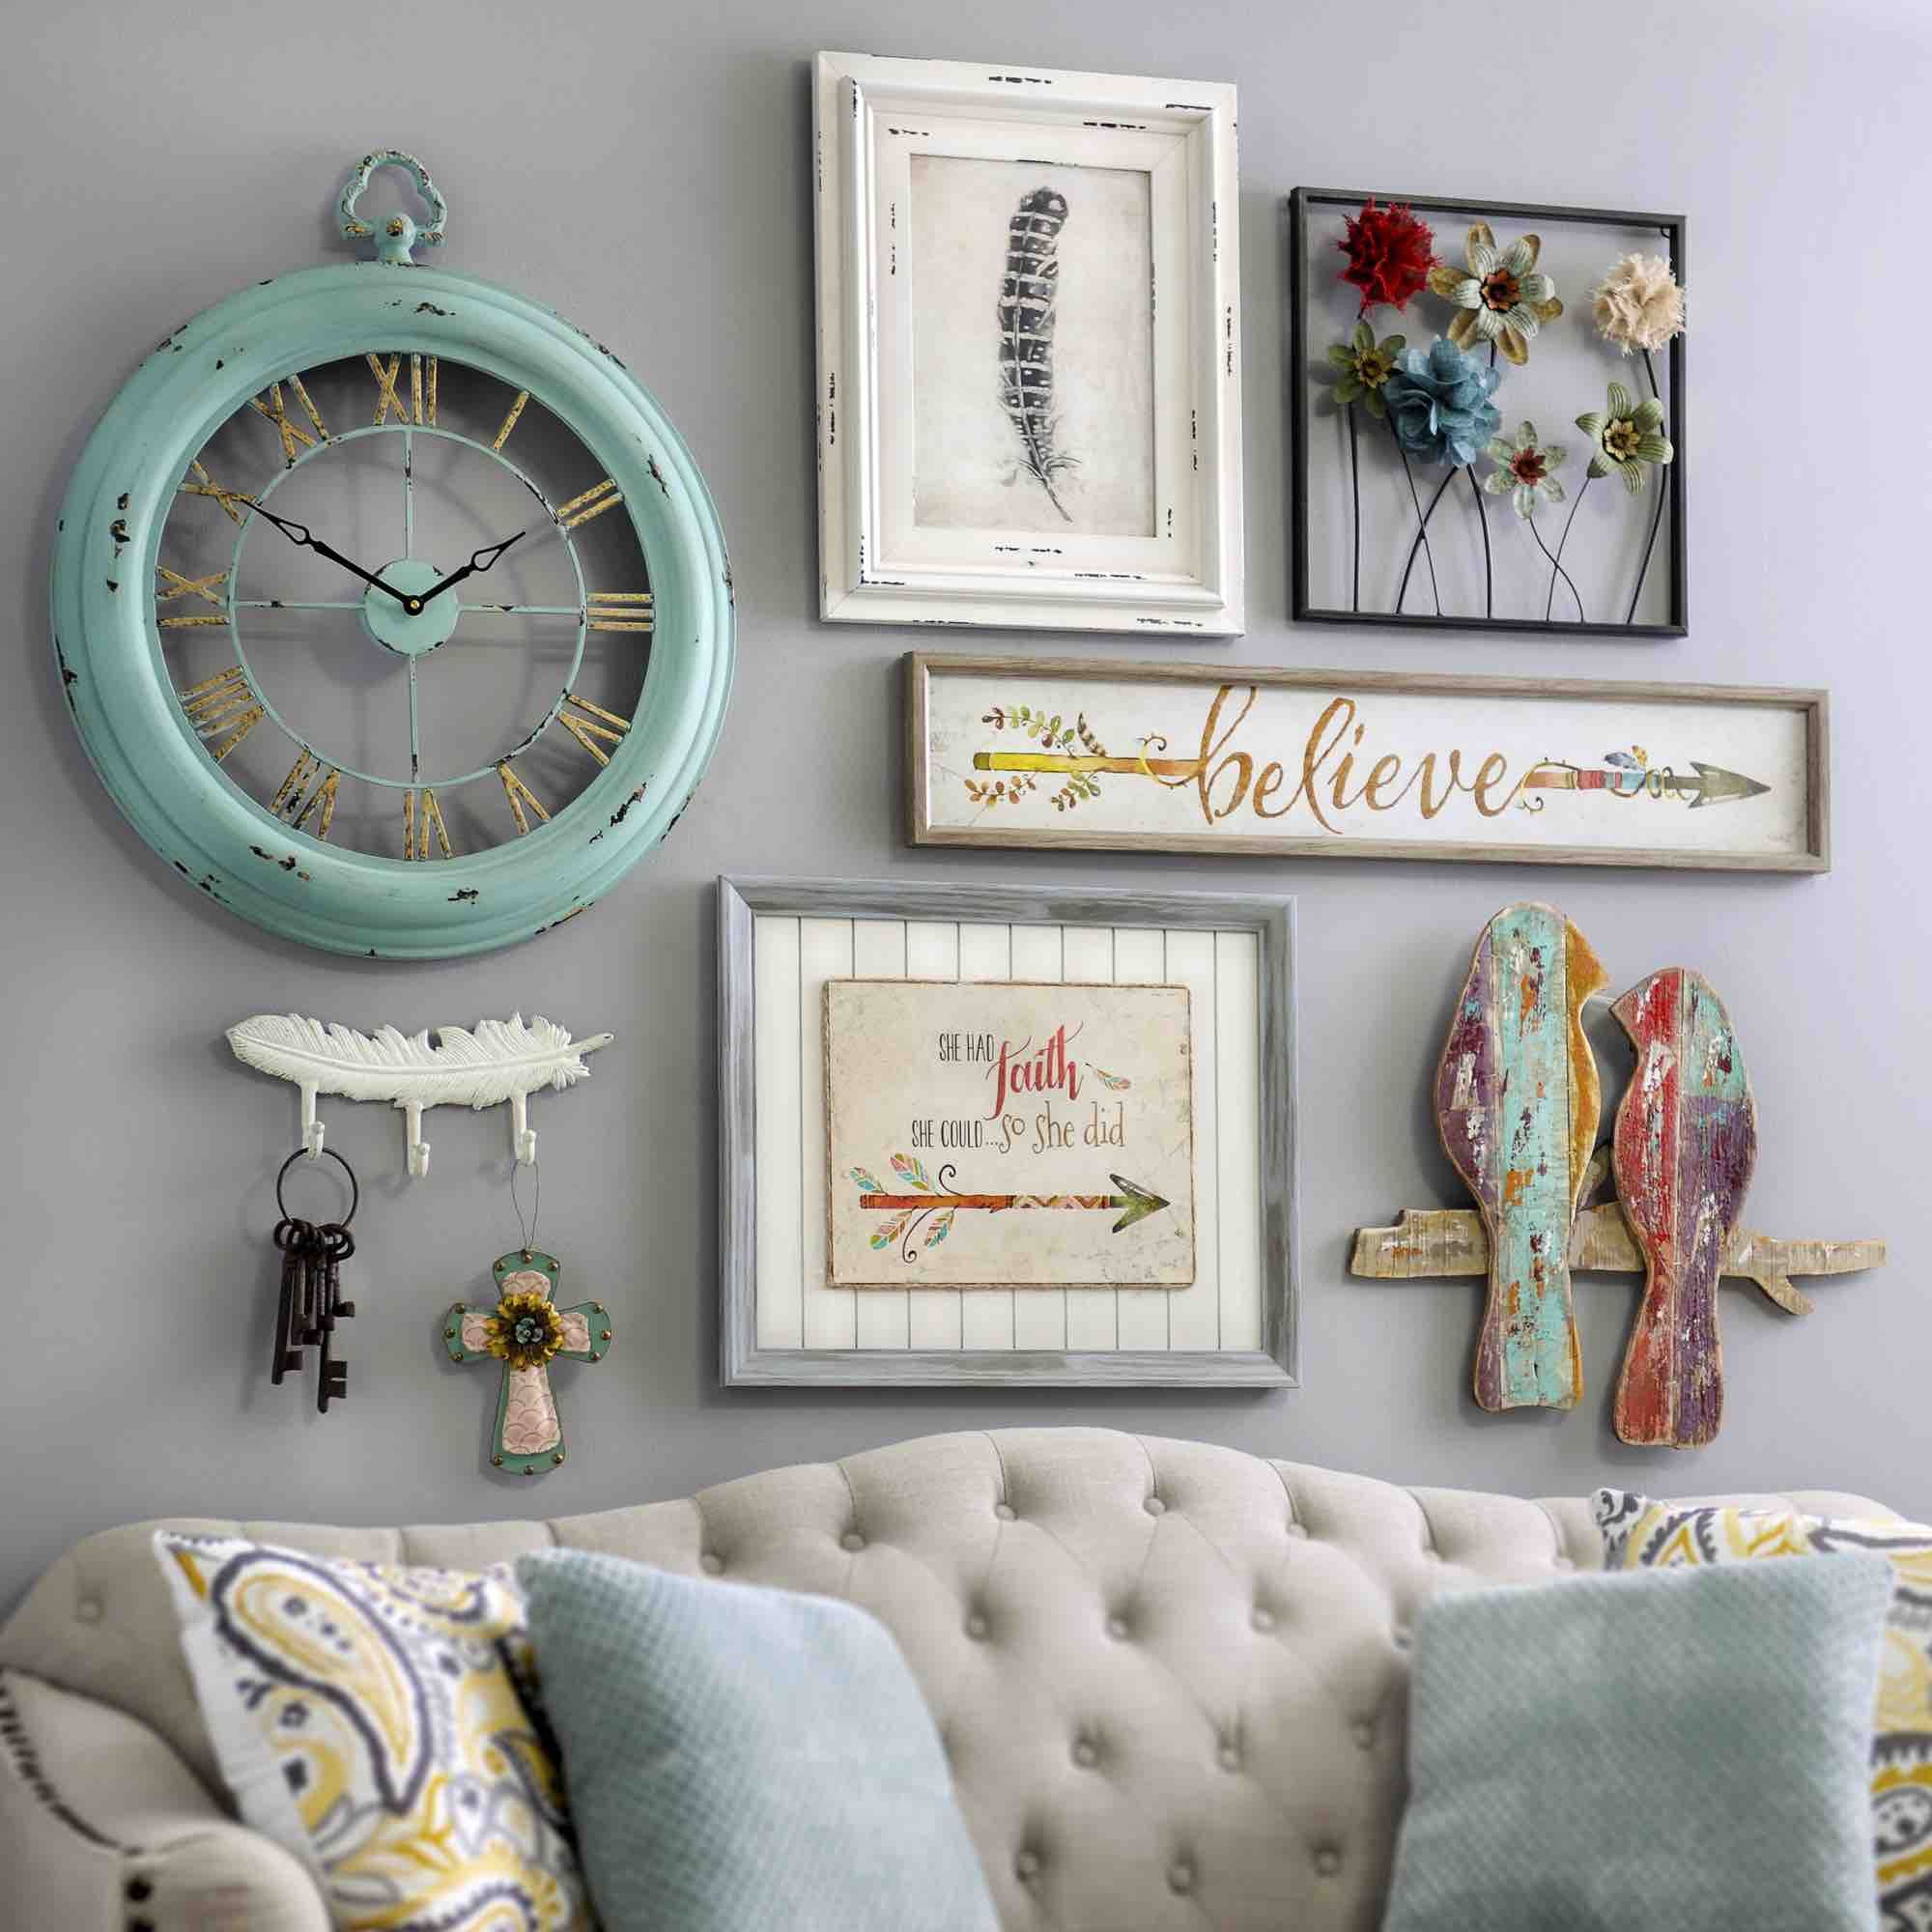 Bring A Shabby Chic Charm To Your Home By Adding Pieces Of Wall Decor From  Kirklandu0027s Flea Market Collection. They Are Full Of Bright Colors,  One Of A Kind ...